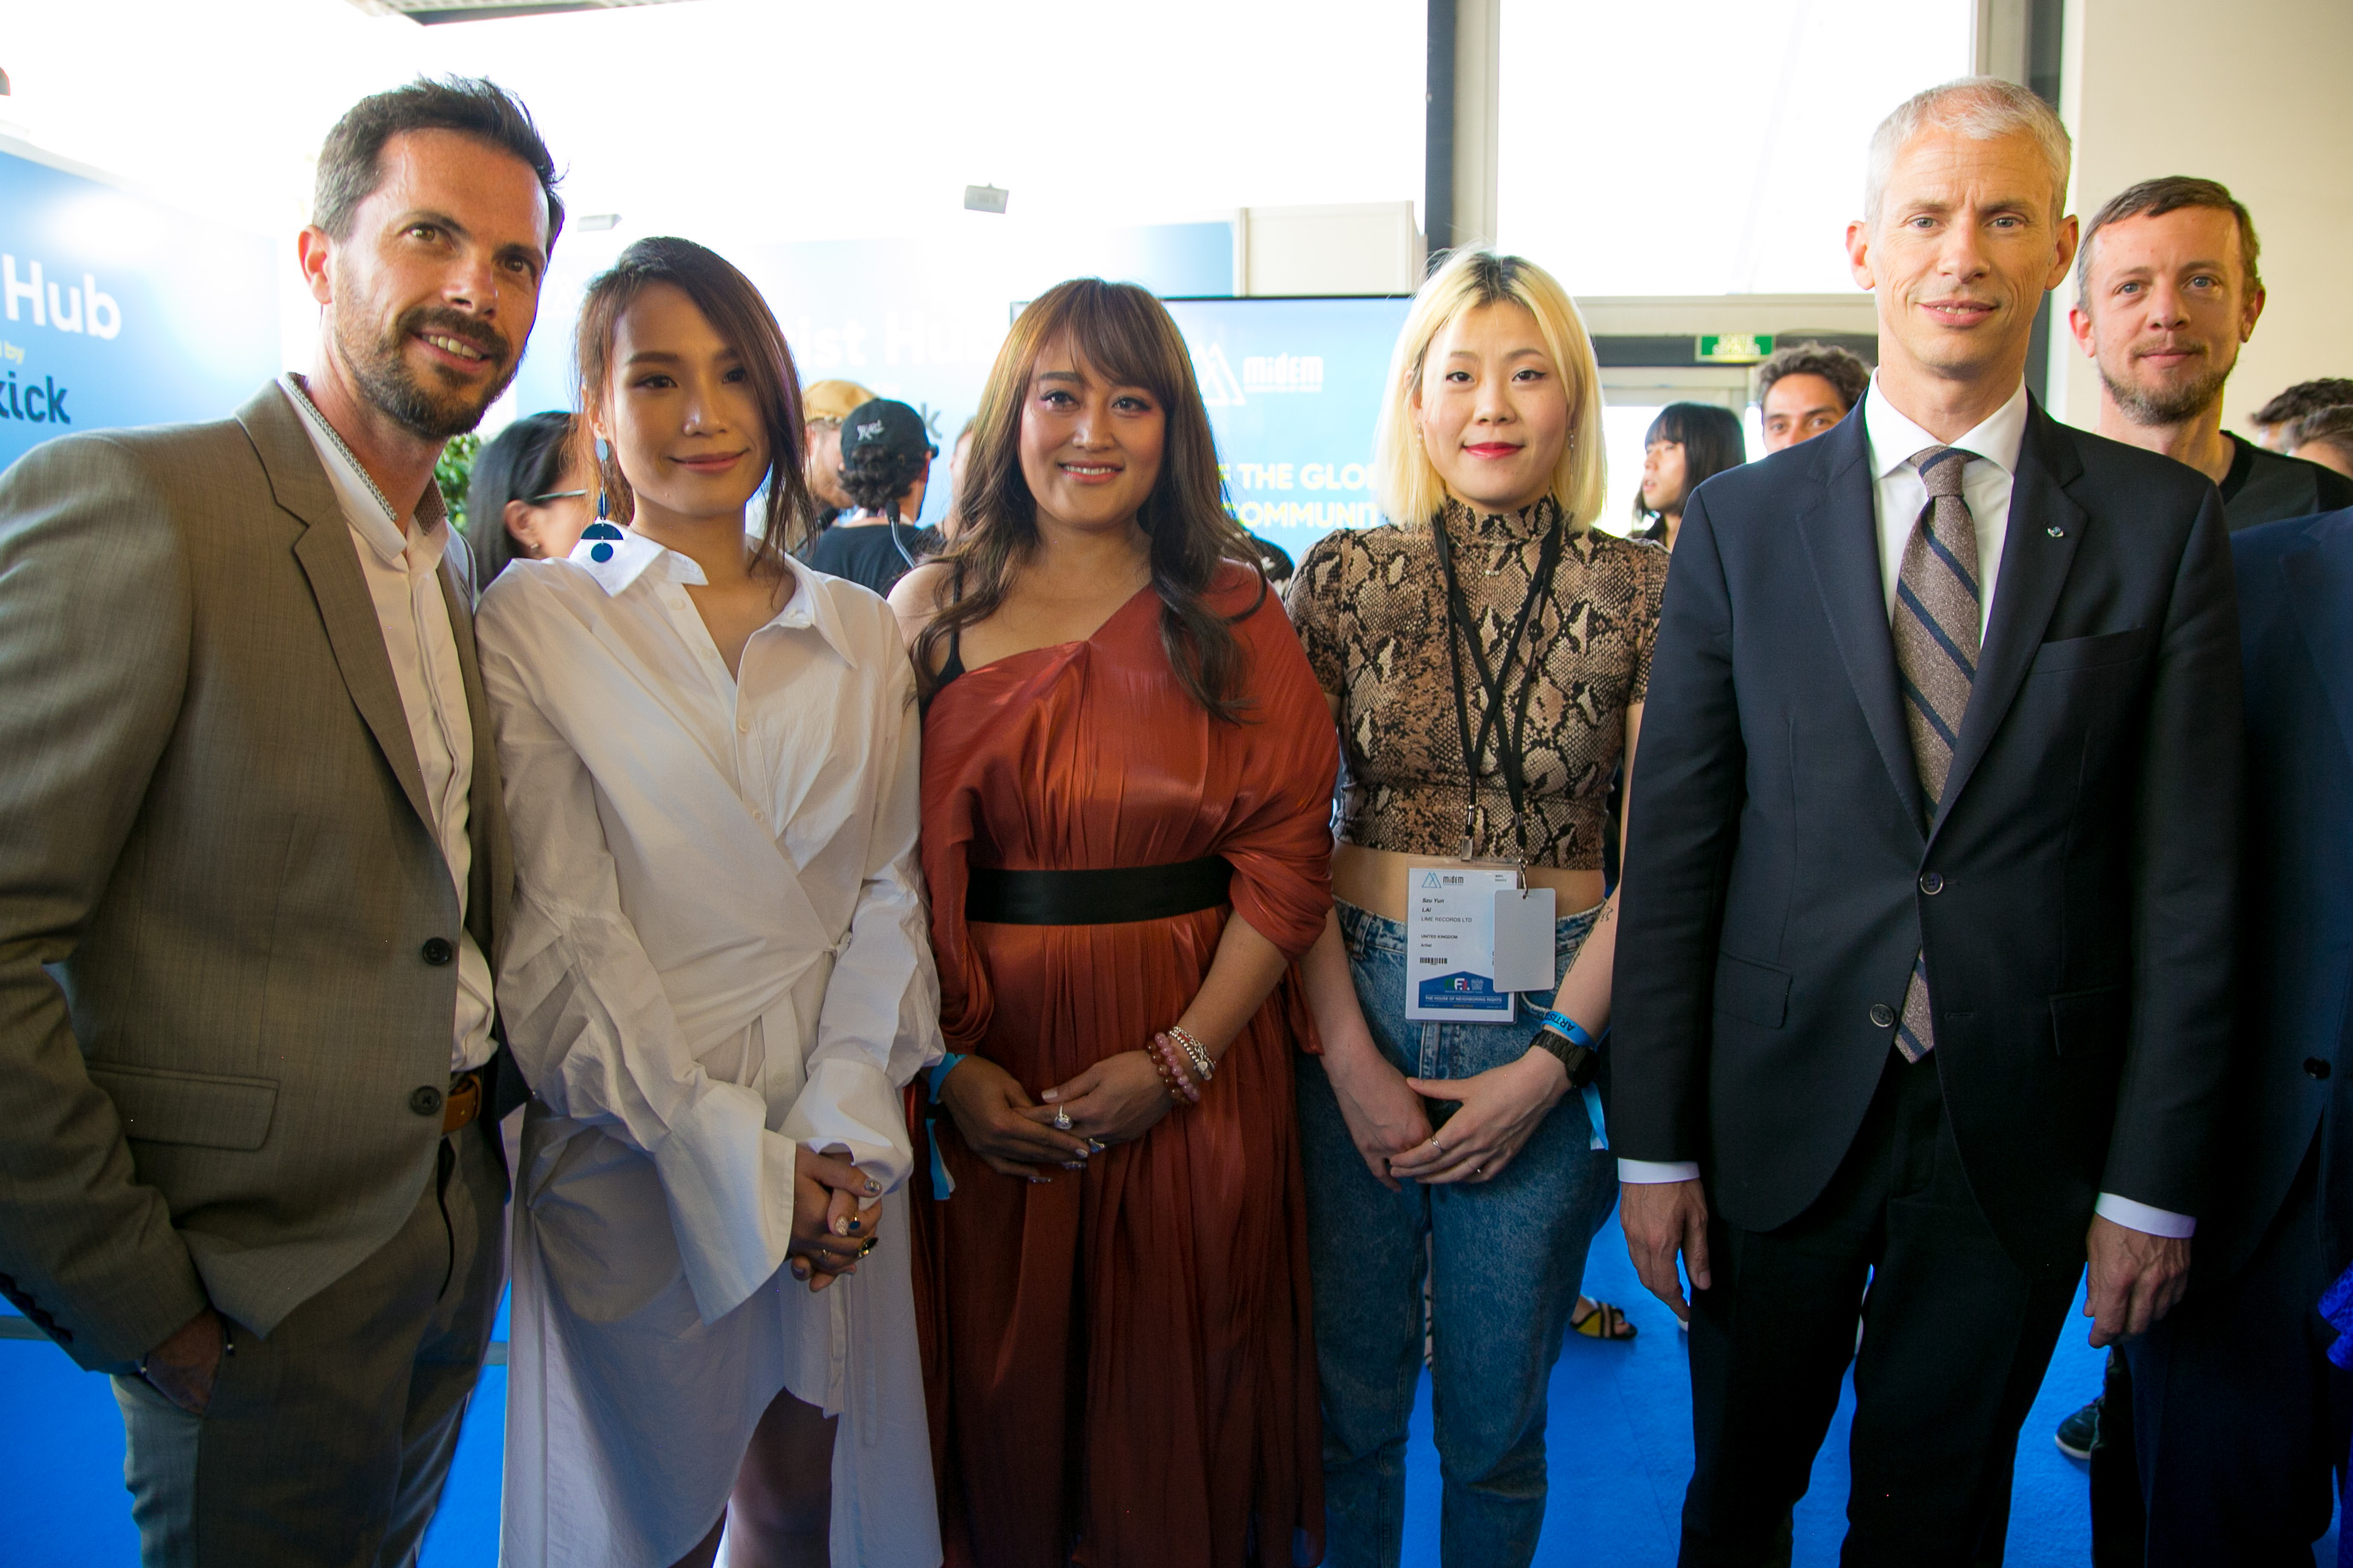 Taiwanese artists, trade delegation stir up MIDEM 2019 in Cannes